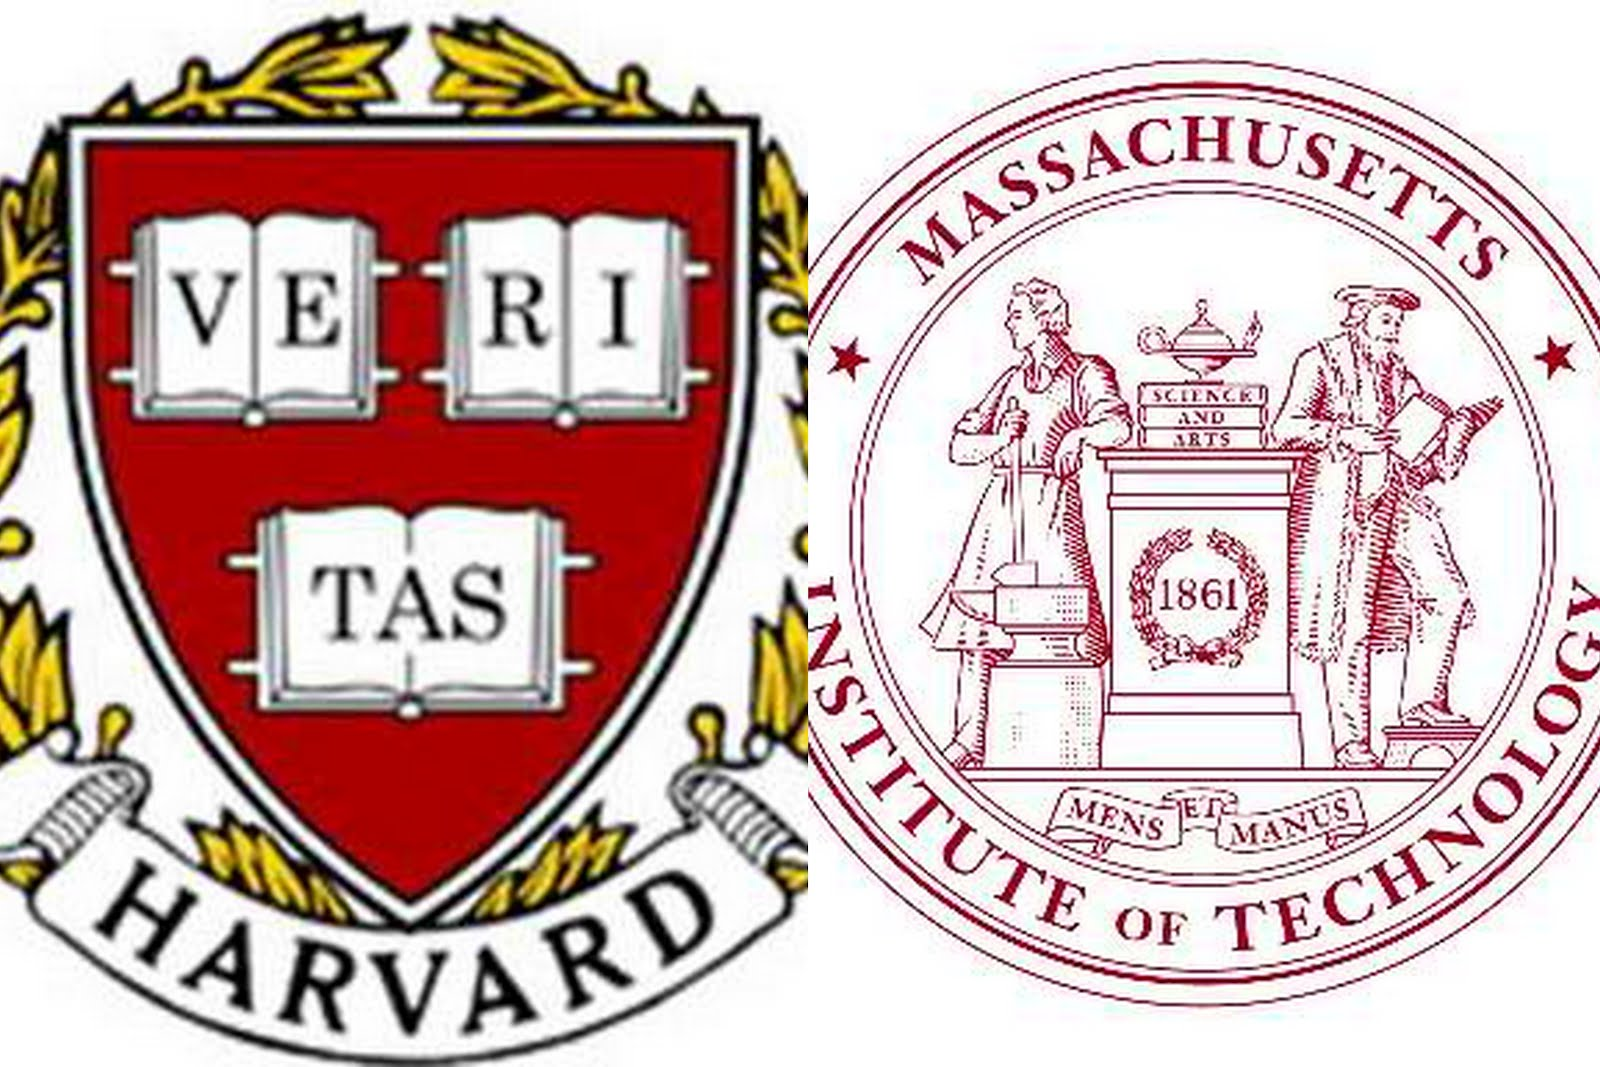 harvard-mit collage